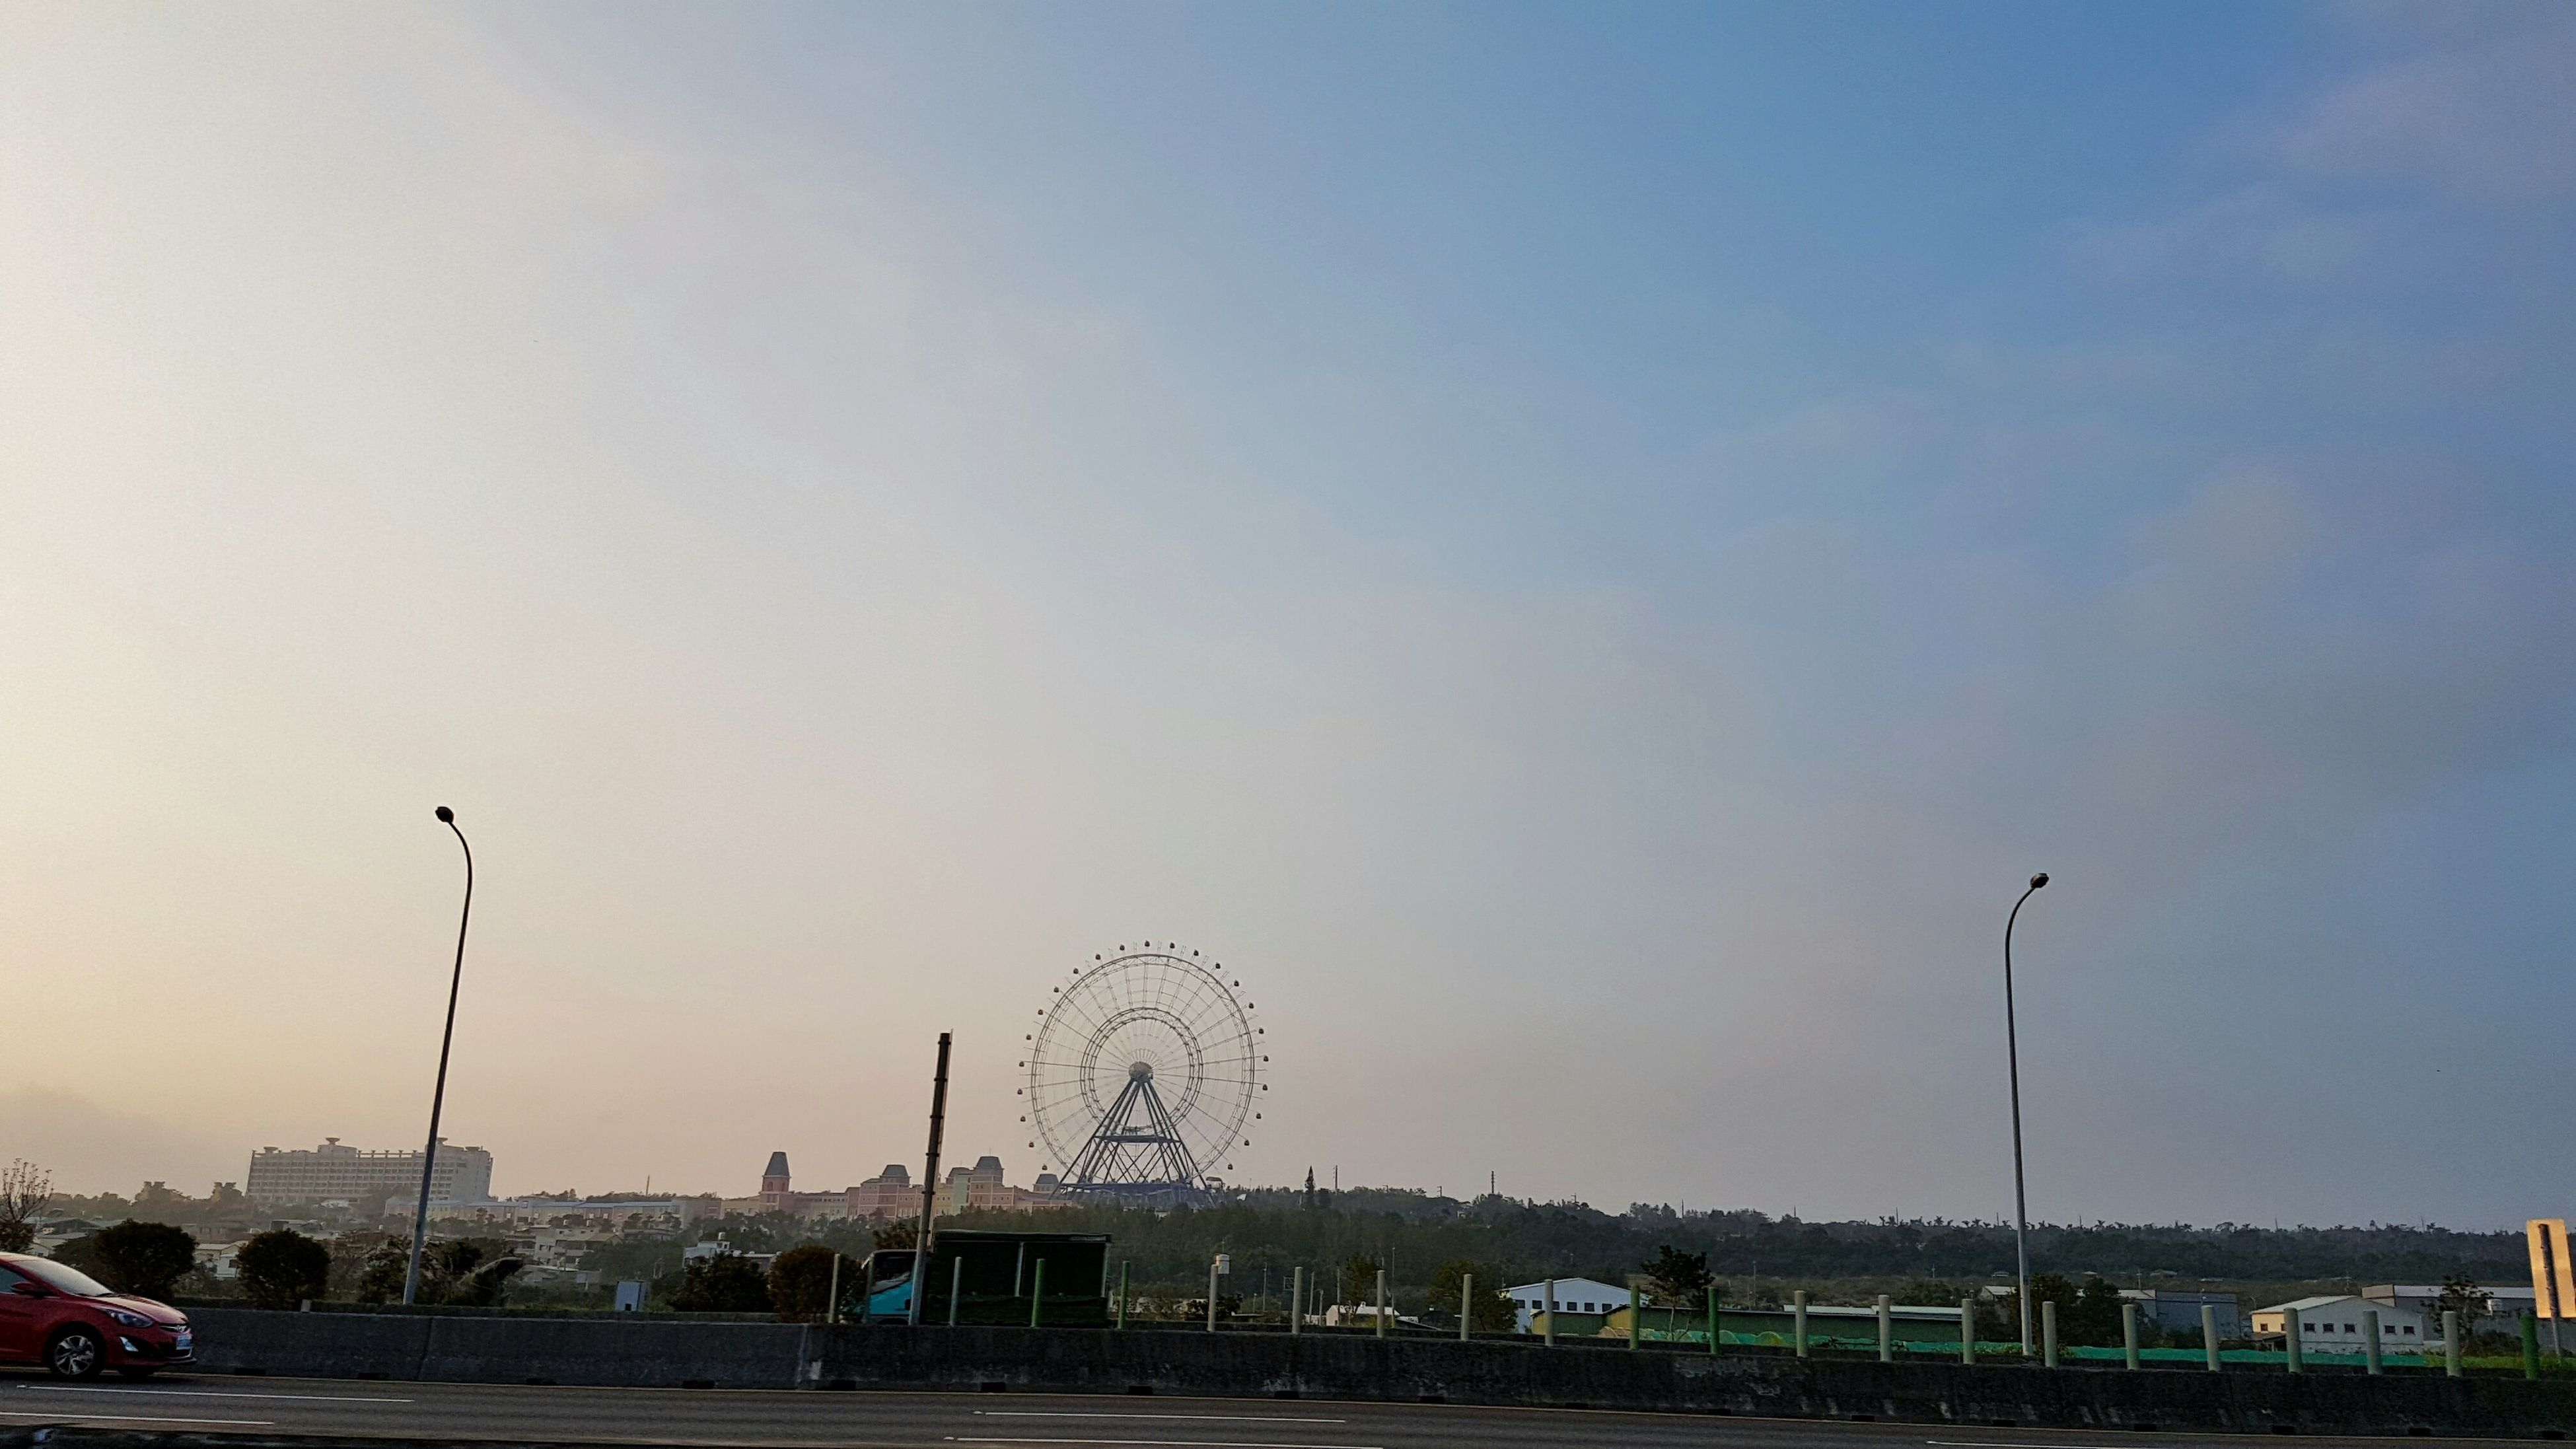 sky, outdoors, no people, nature, architecture, amusement park, day